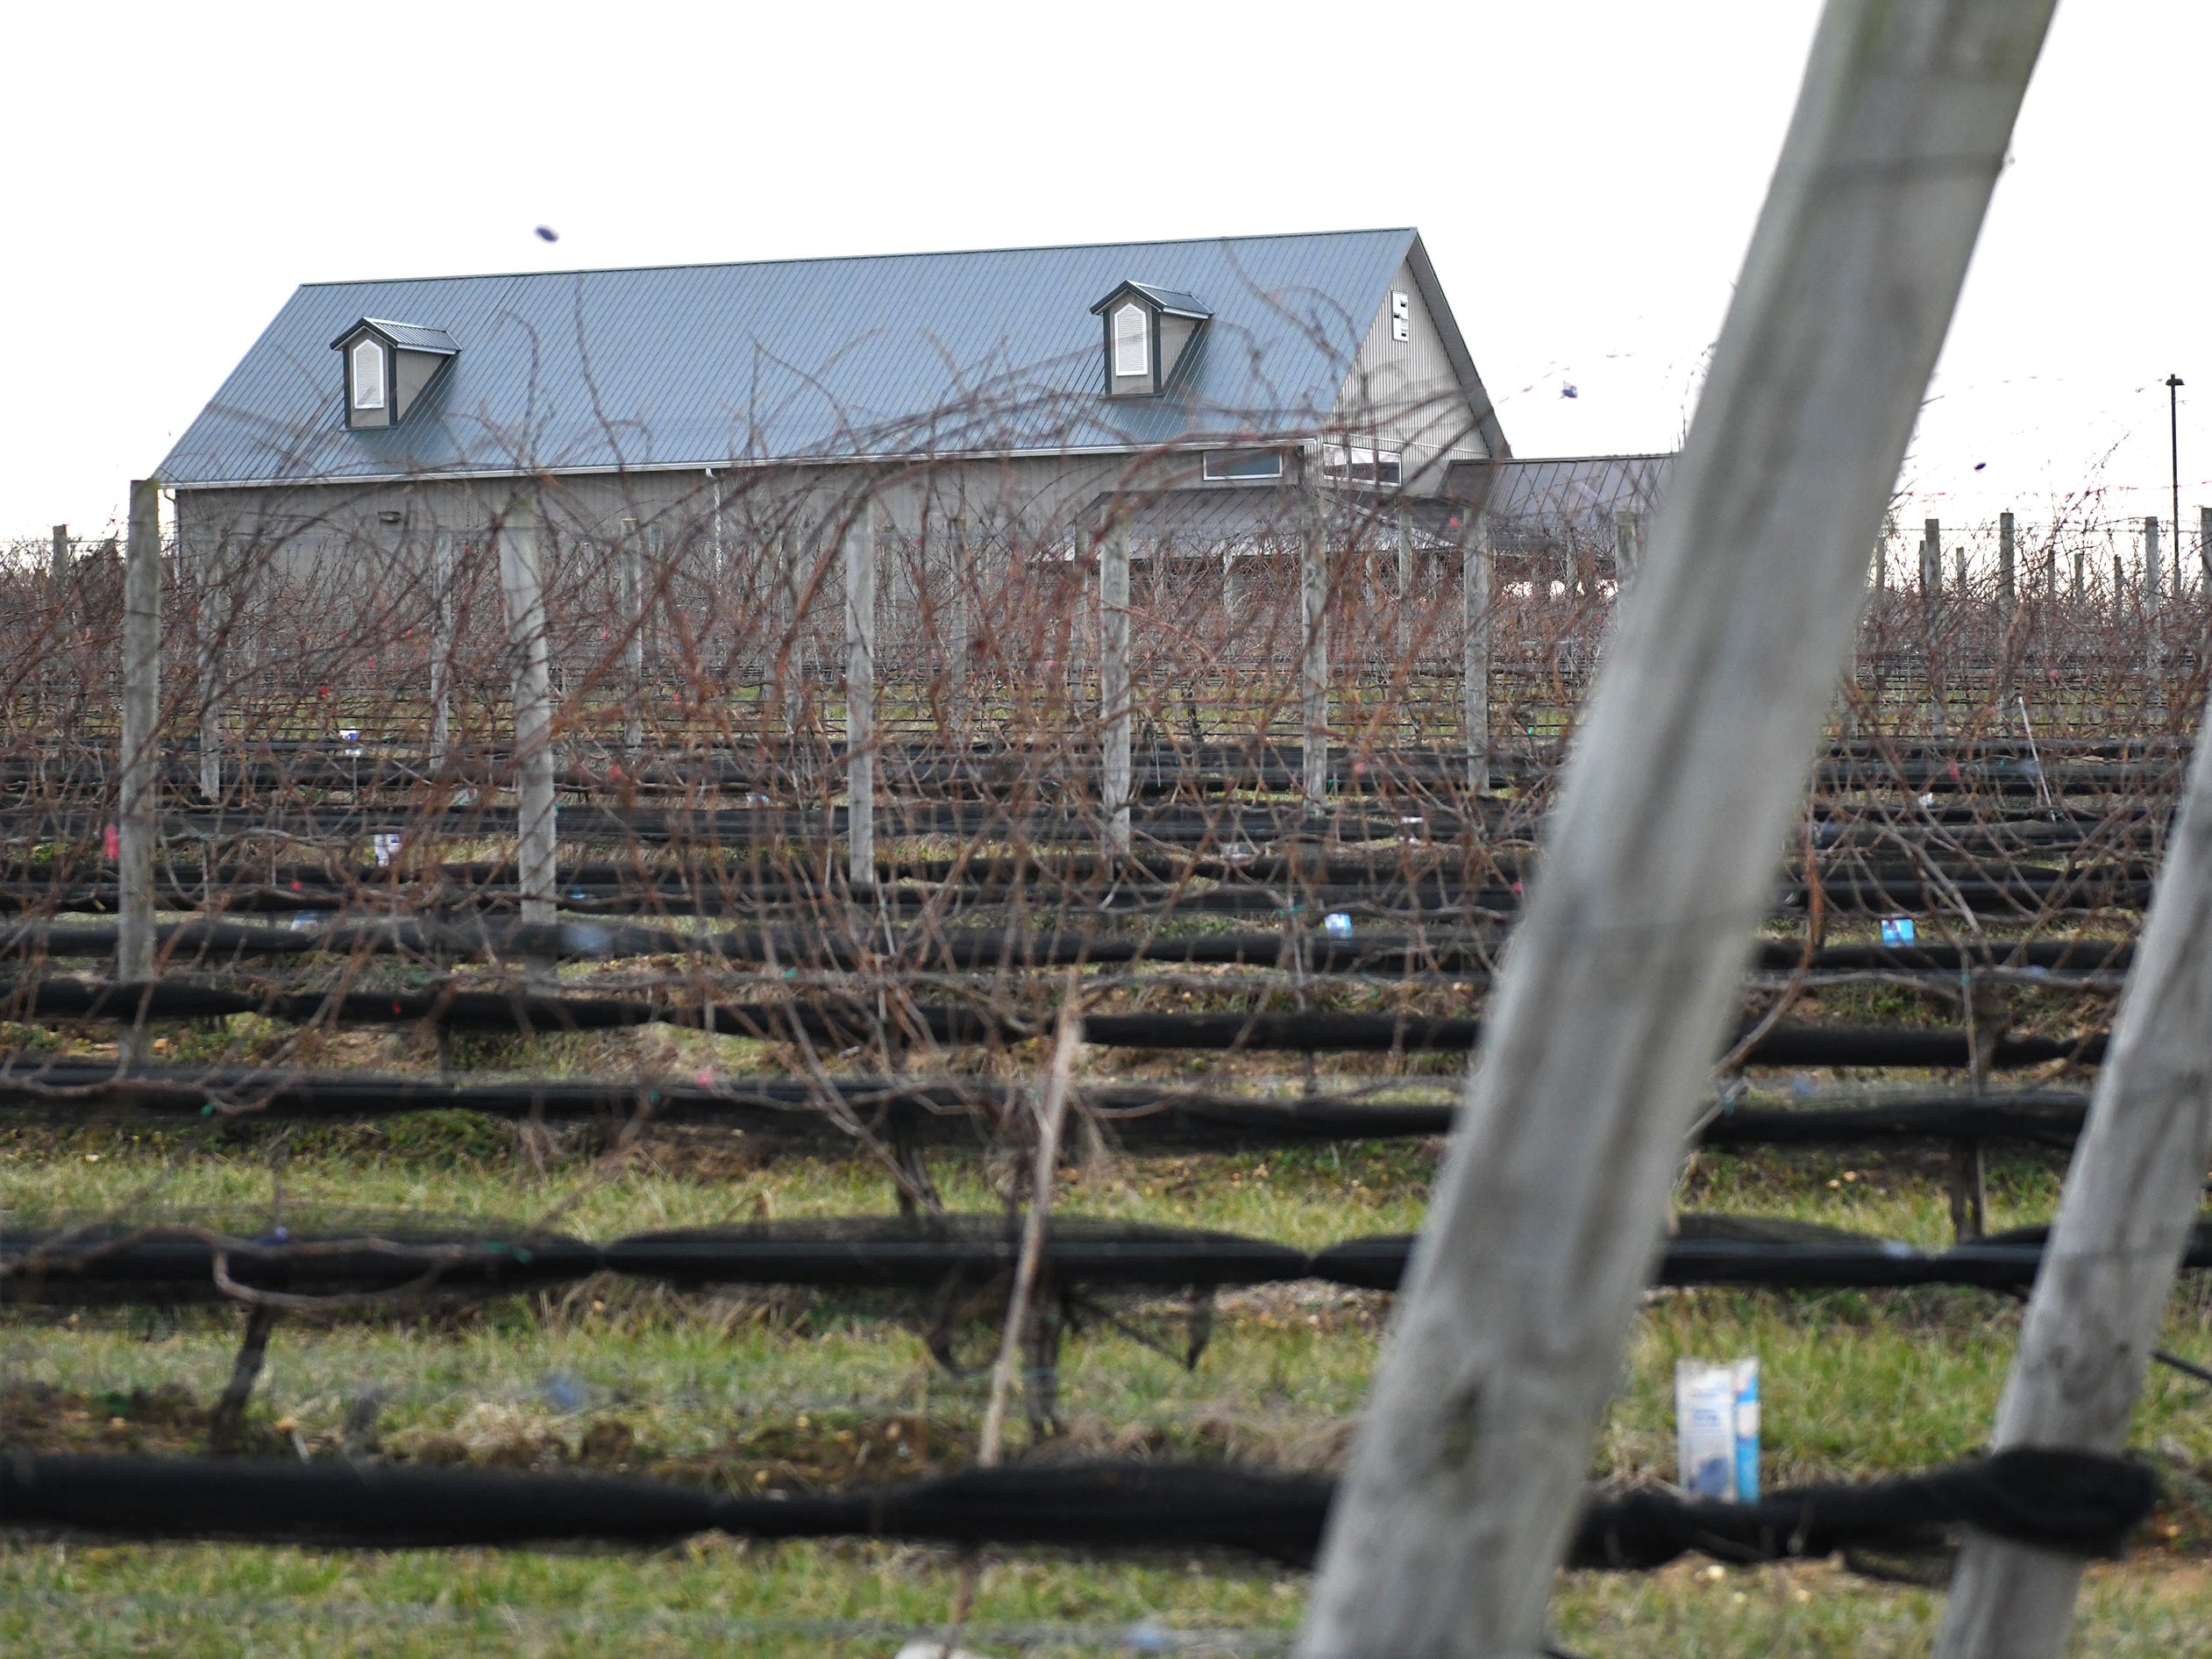 Rows of grape vines can be seen on the property of Cedar Rose Vineyards in Rosenhayn on Tuesday, Jan. 8, 2019.